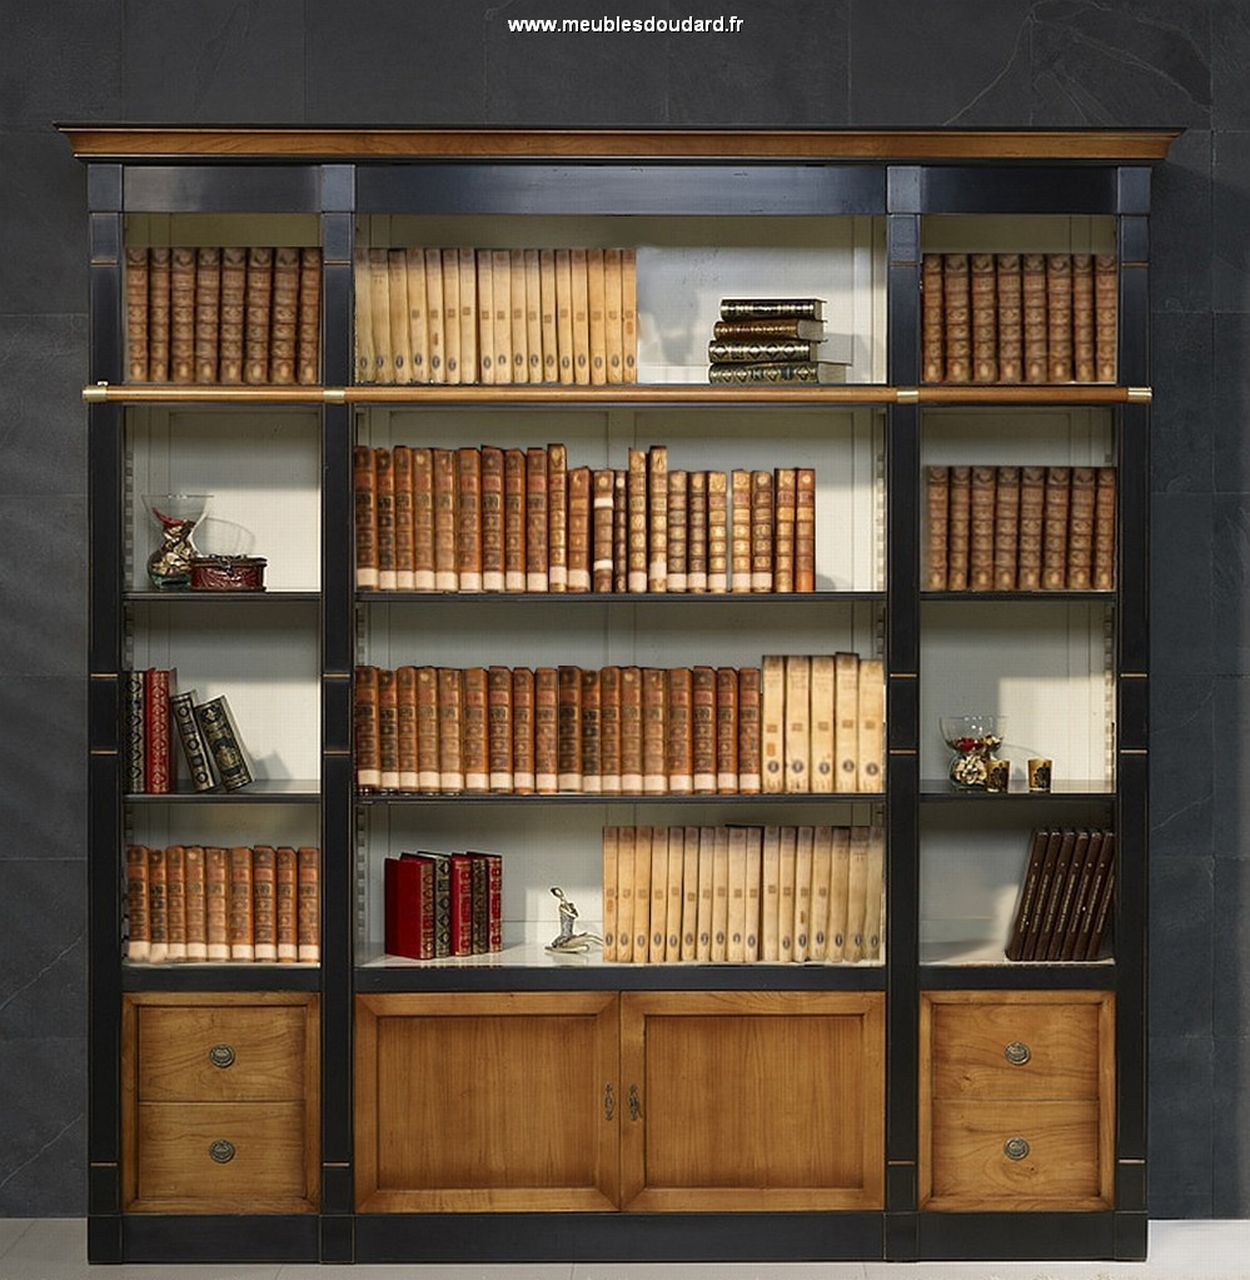 Bibliotheque En Bois Massif - Meuble Biblioth Que Biblioth Que Merisier Biblioth Que [mjhdah]https://www.made-in-meubles.com/media/catalog/product/cache/1/image/9df78eab33525d08d6e5fb8d27136e95/b/i/bibliotheque_bois_massif_authentique.jpg